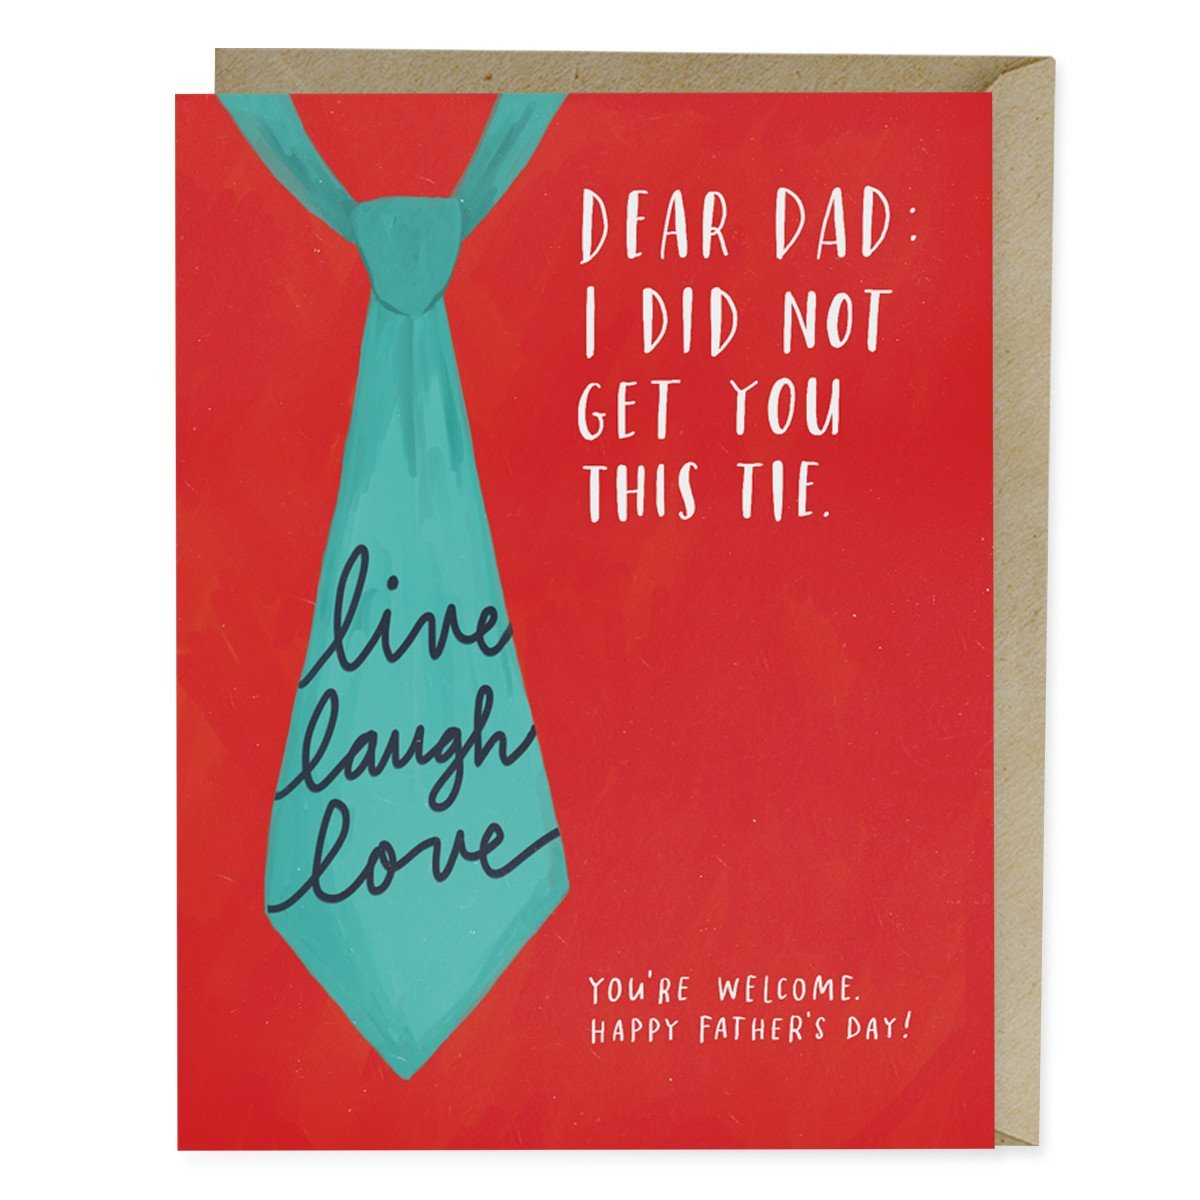 Live Laugh Love Tie Fathers Day Card Emily Mcdowell Studio